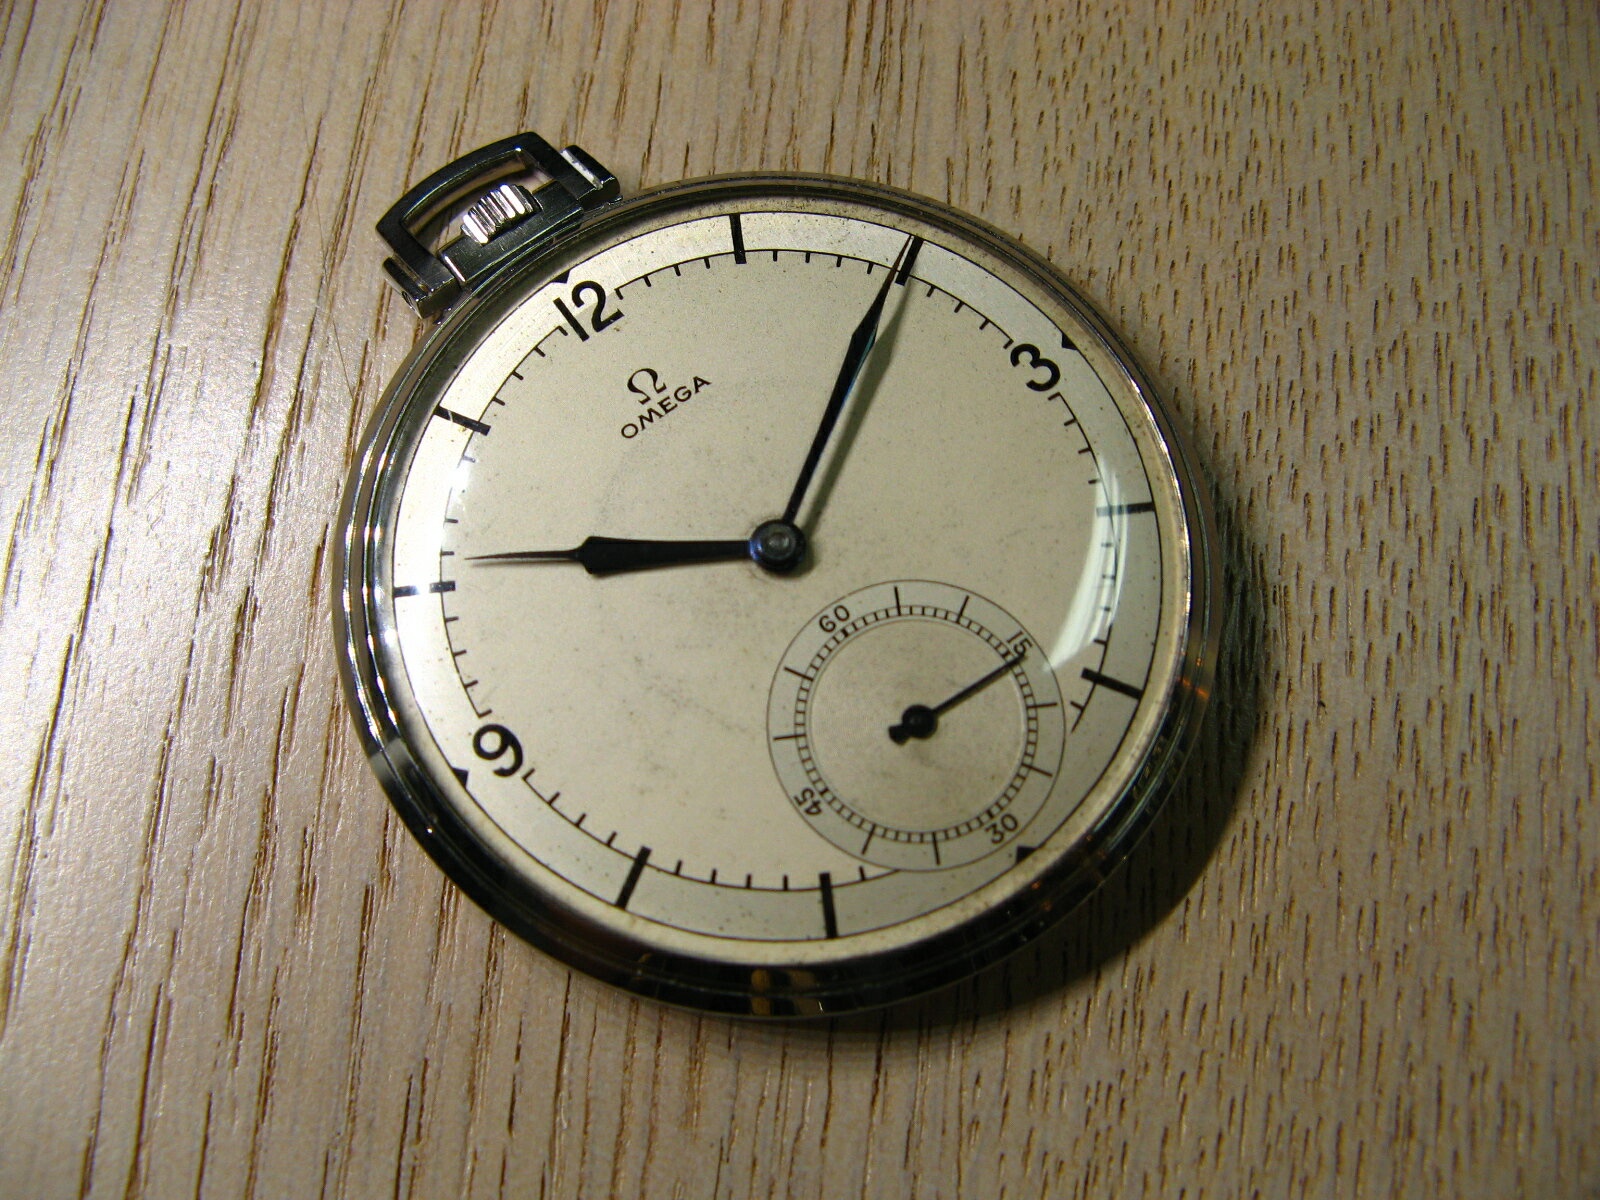 OMEGA pocket watch hand-wound